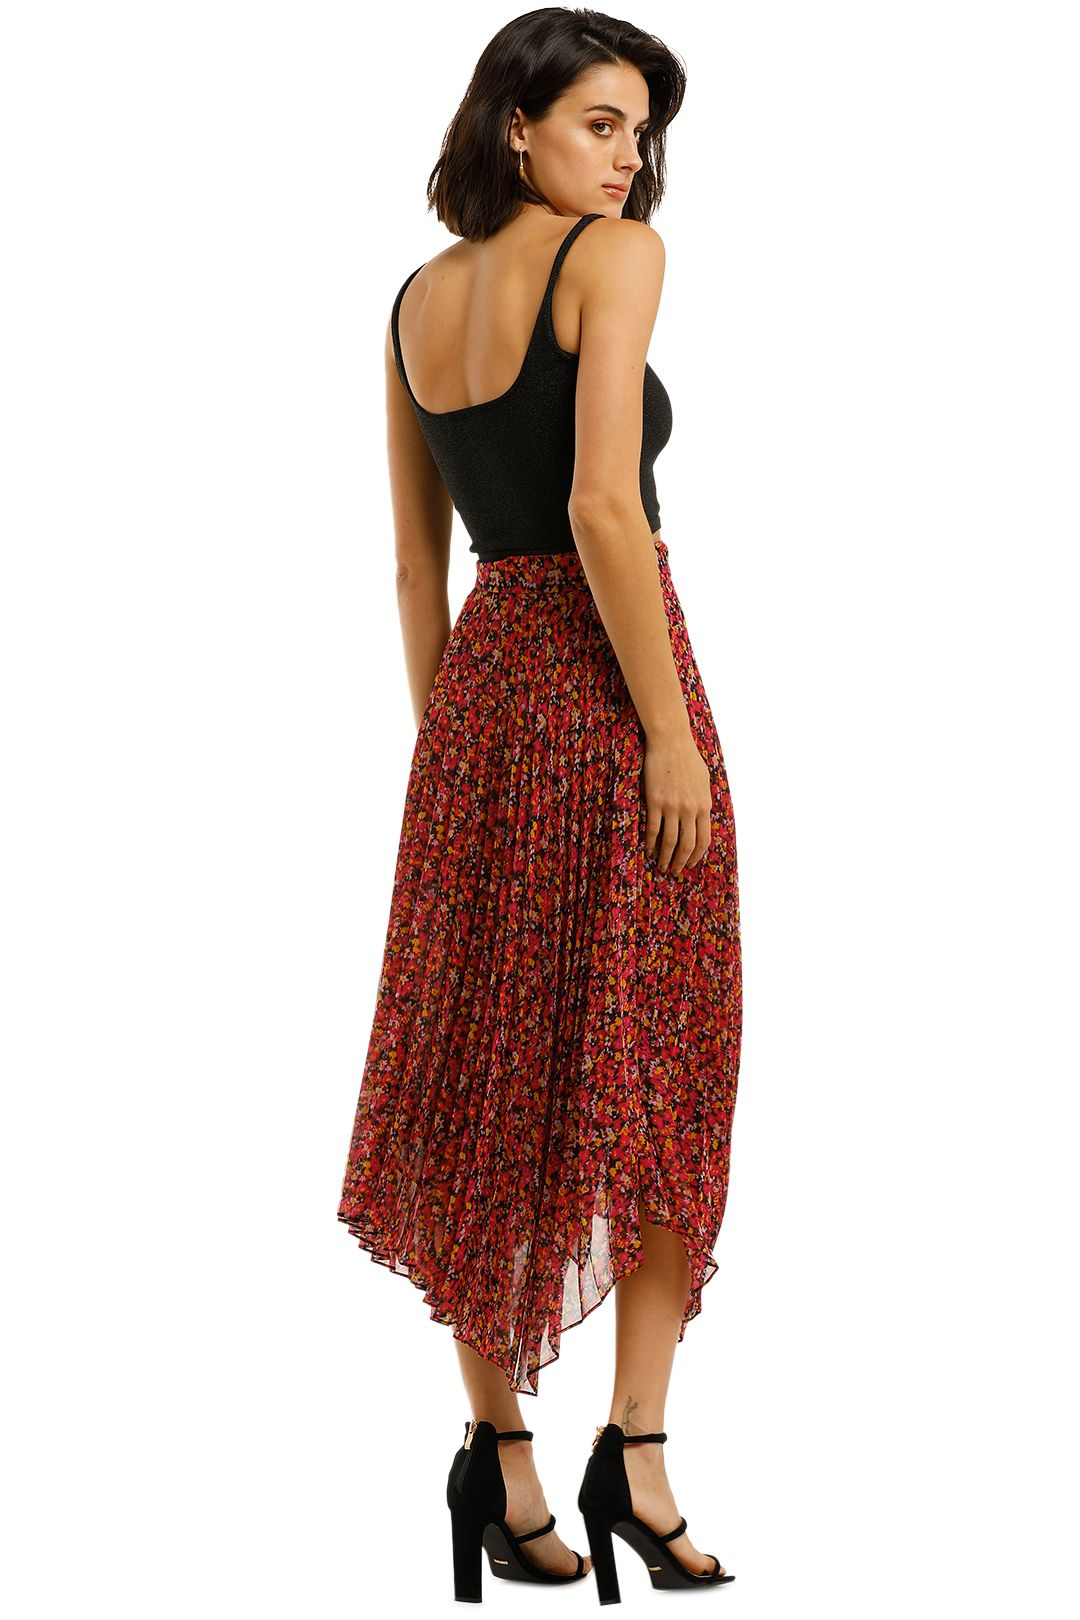 Camilla-and-Marc-Lilia-Skirt-red-Back